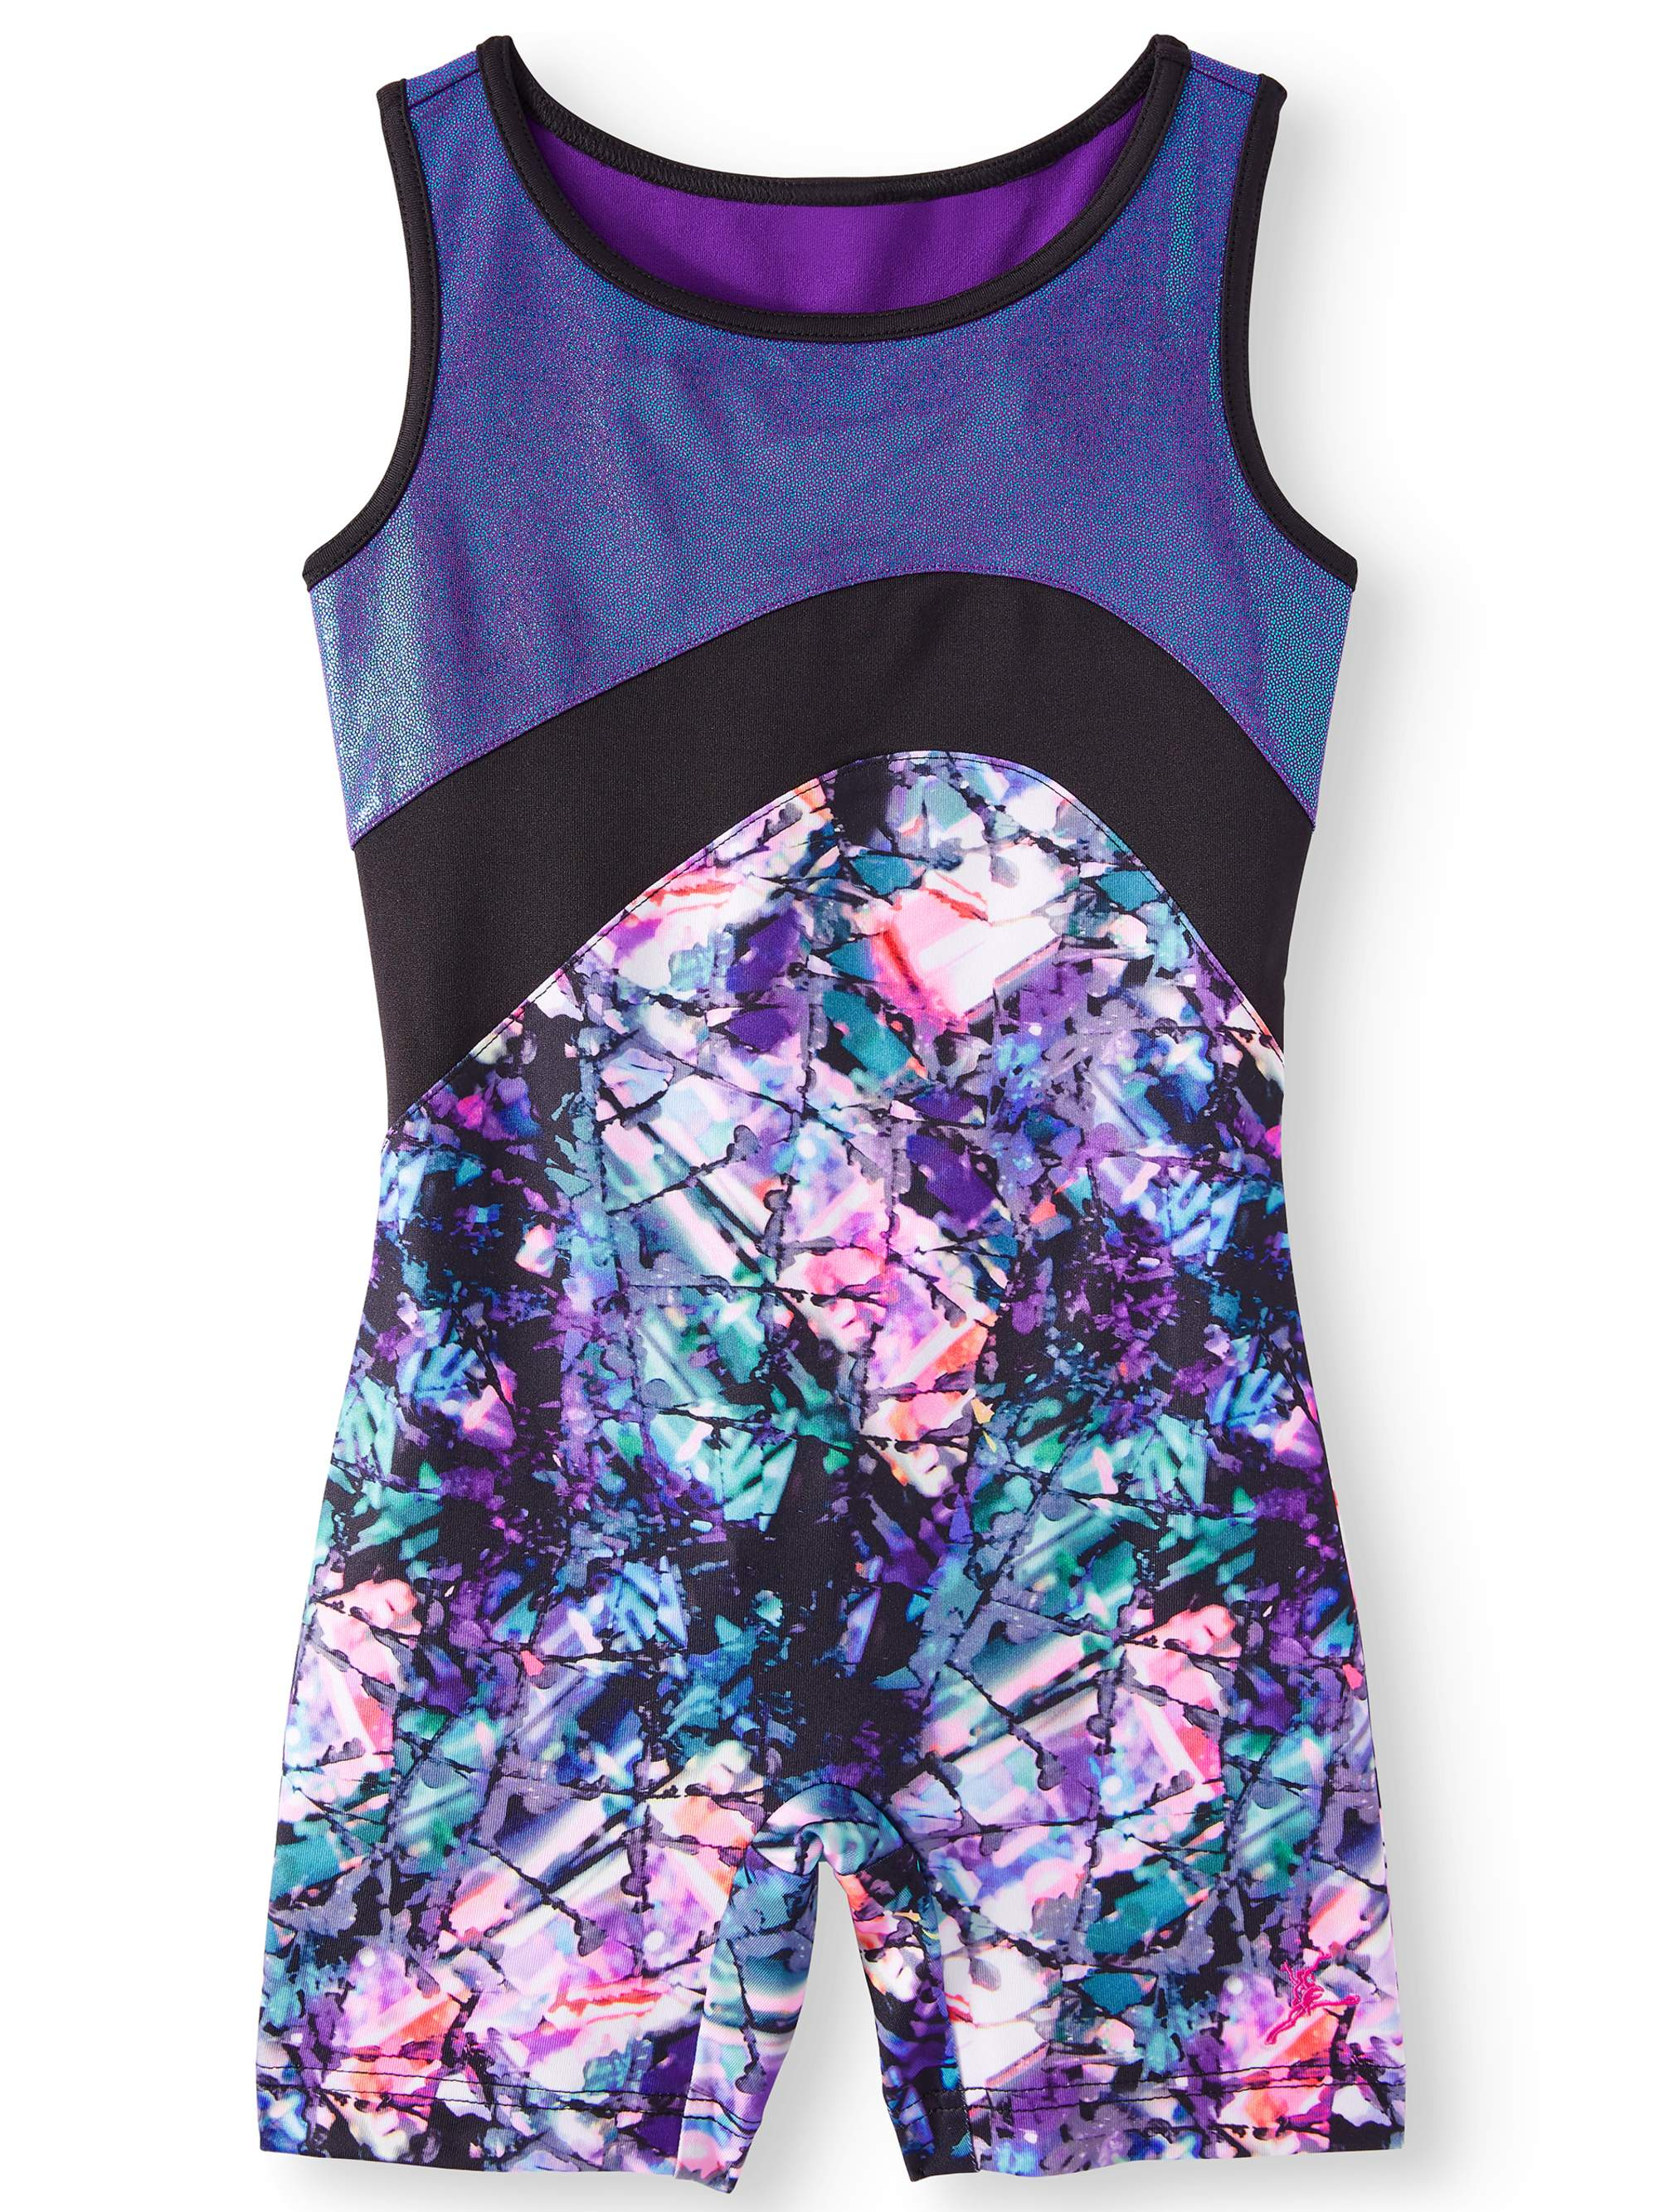 Enchanted printed Biketard with surplice keyhole back and foiled inset